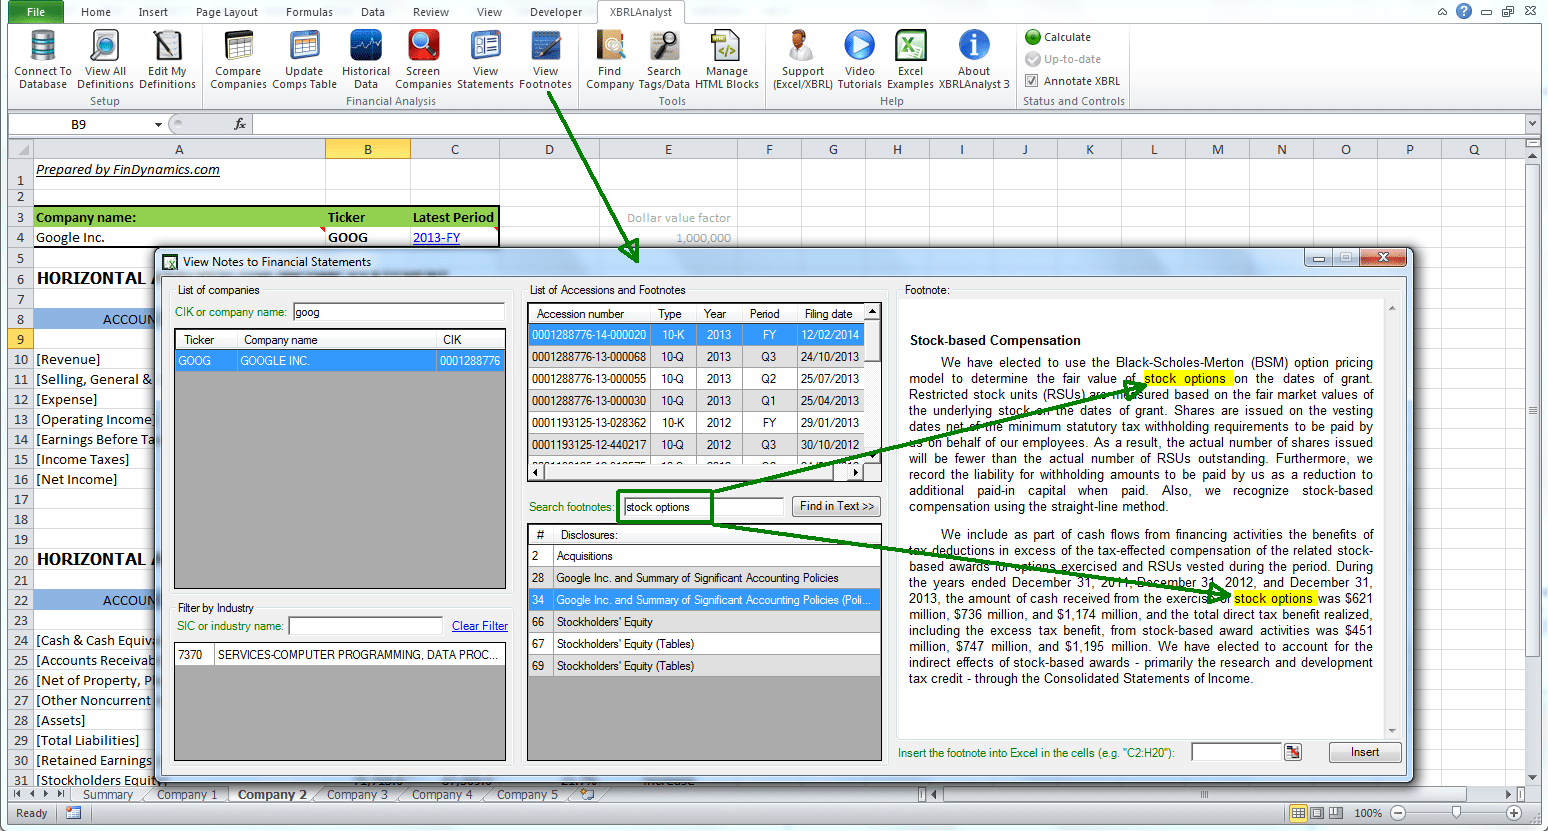 How To Use Xbrl Yst In Excel